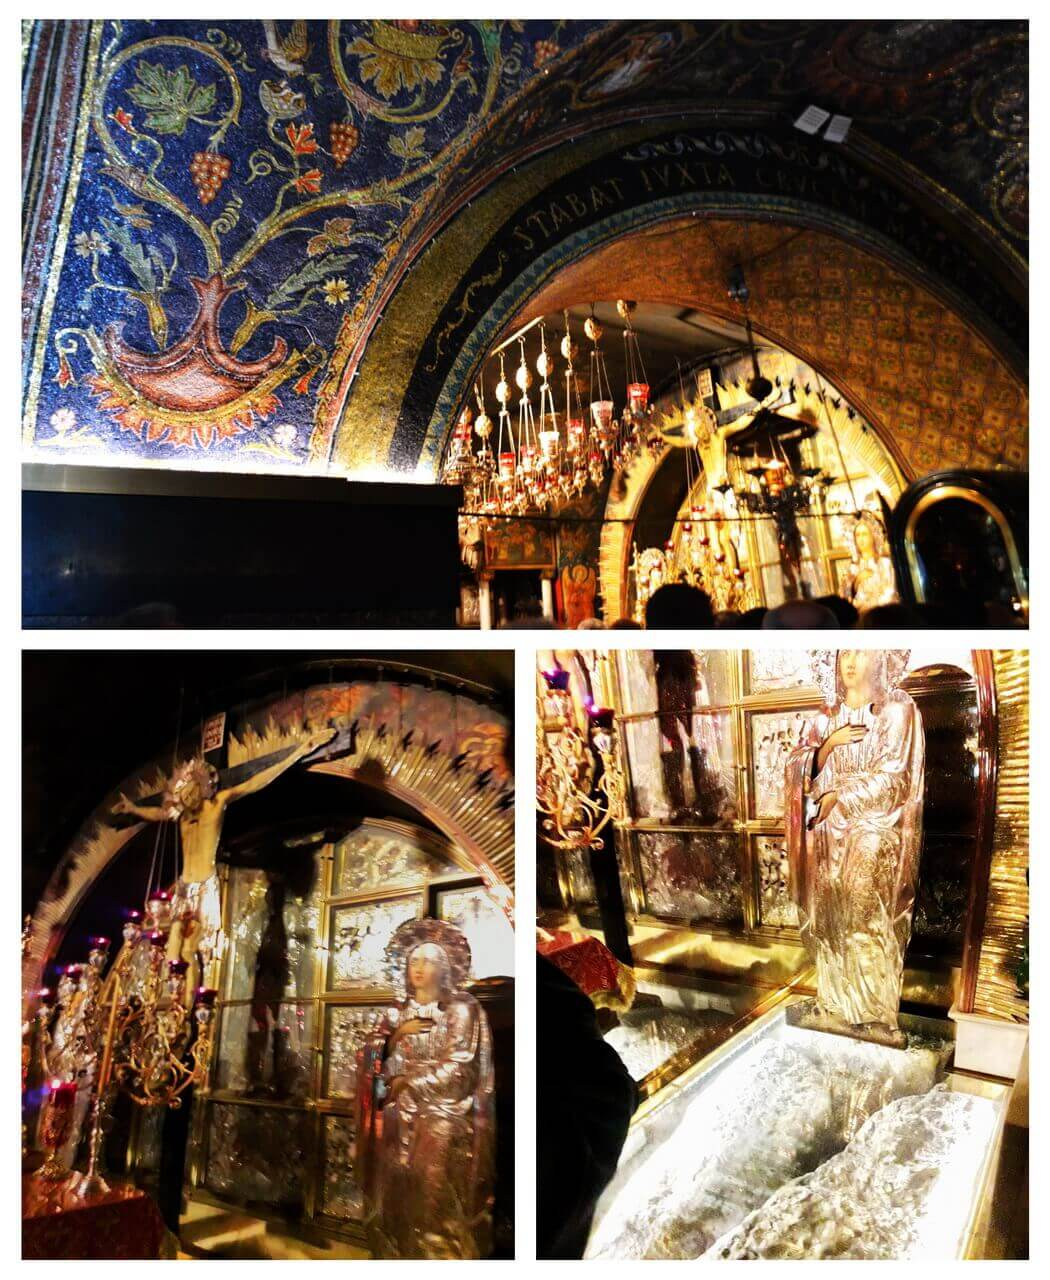 The Altar of the Crucifixion, the Holy of the Church of Holy Sepulchre